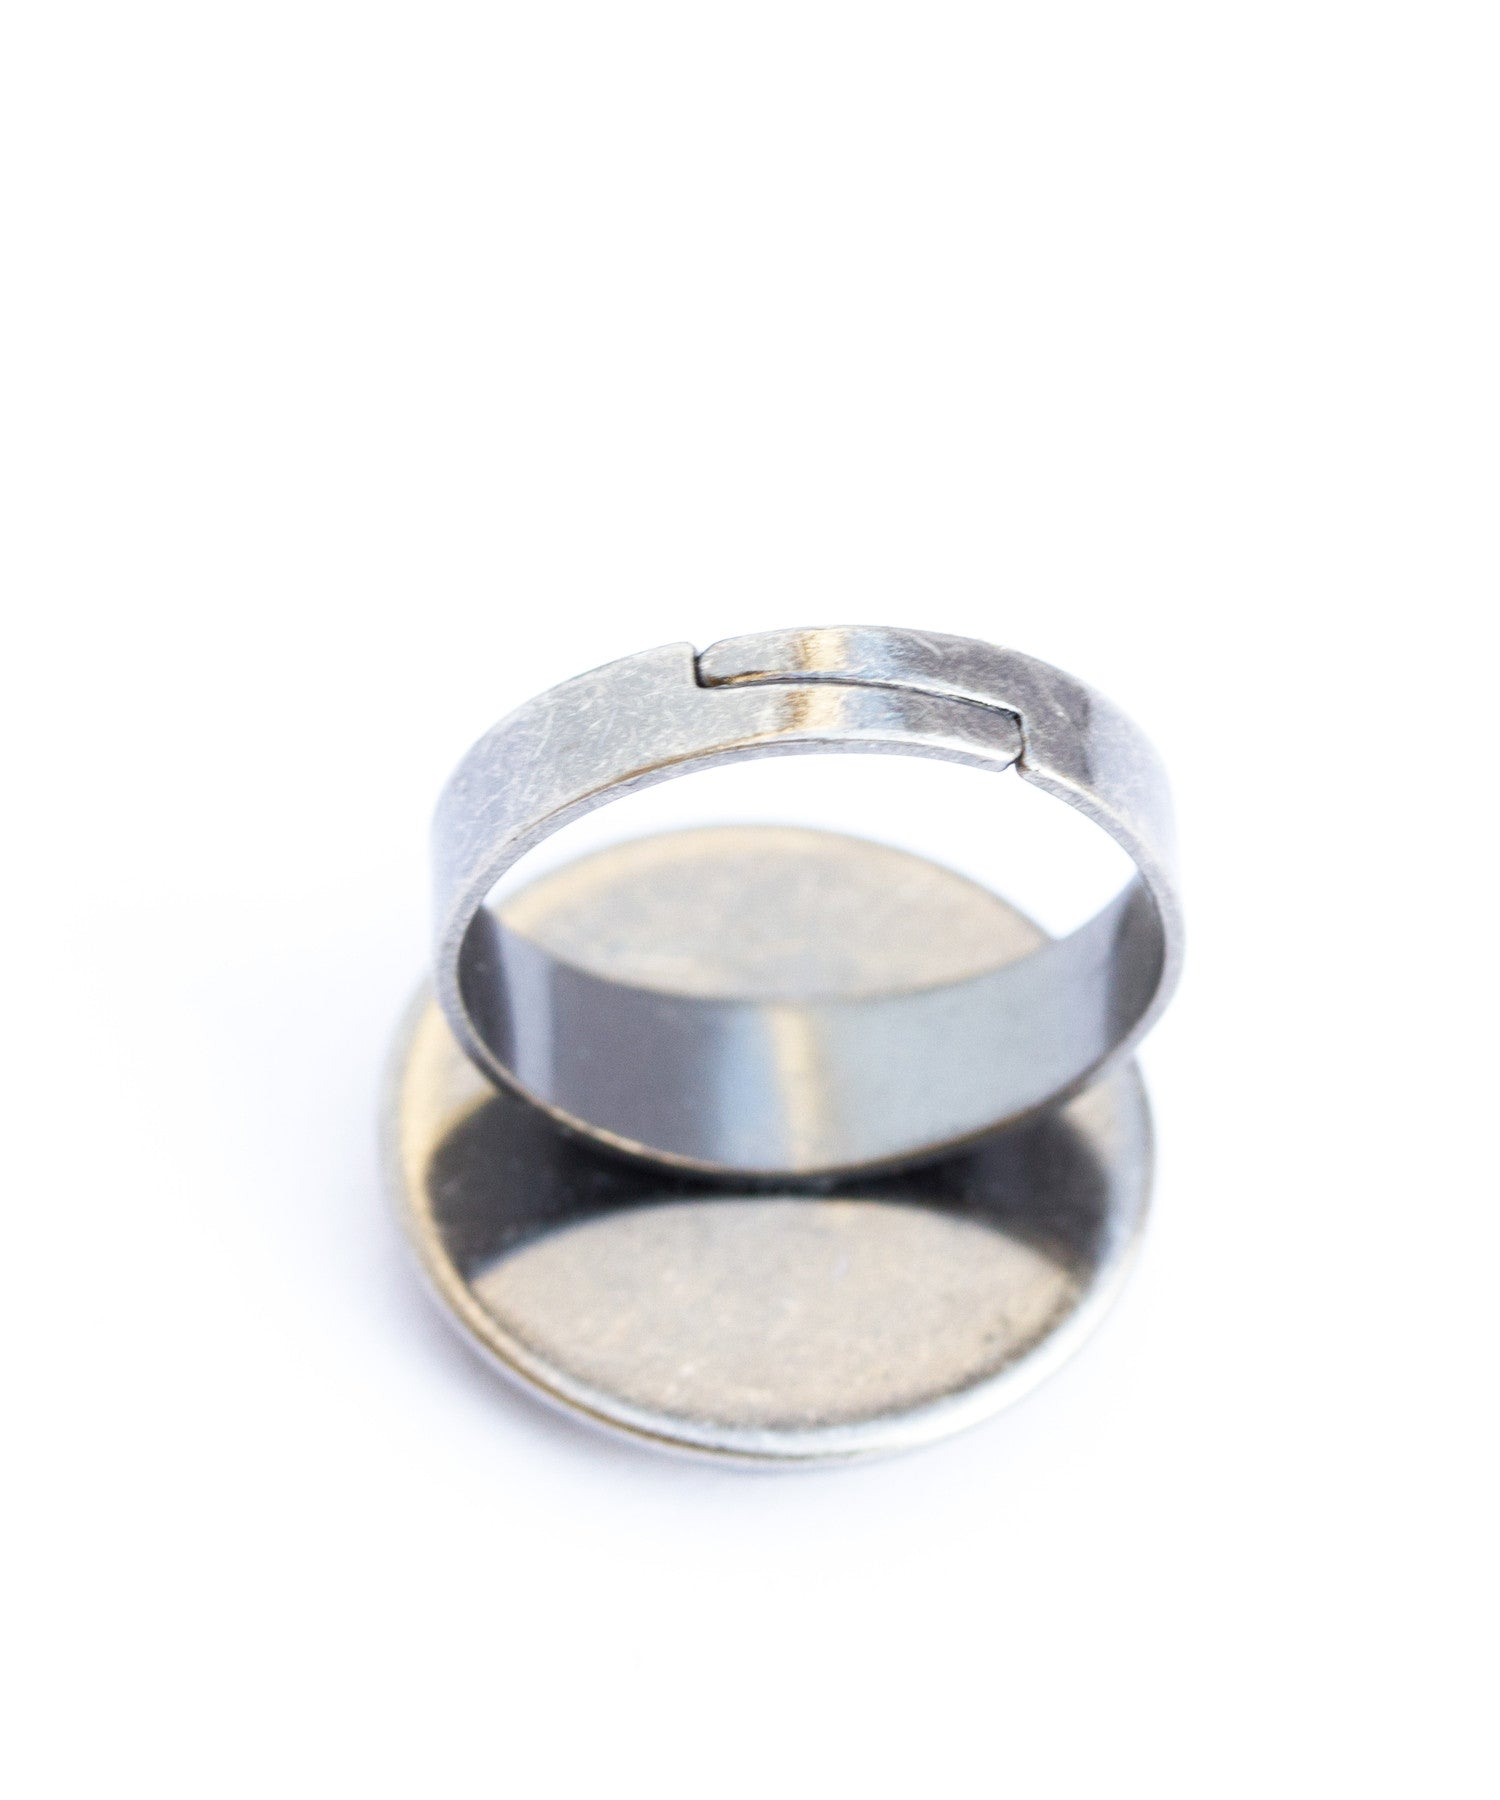 Geeky cocktail round ring